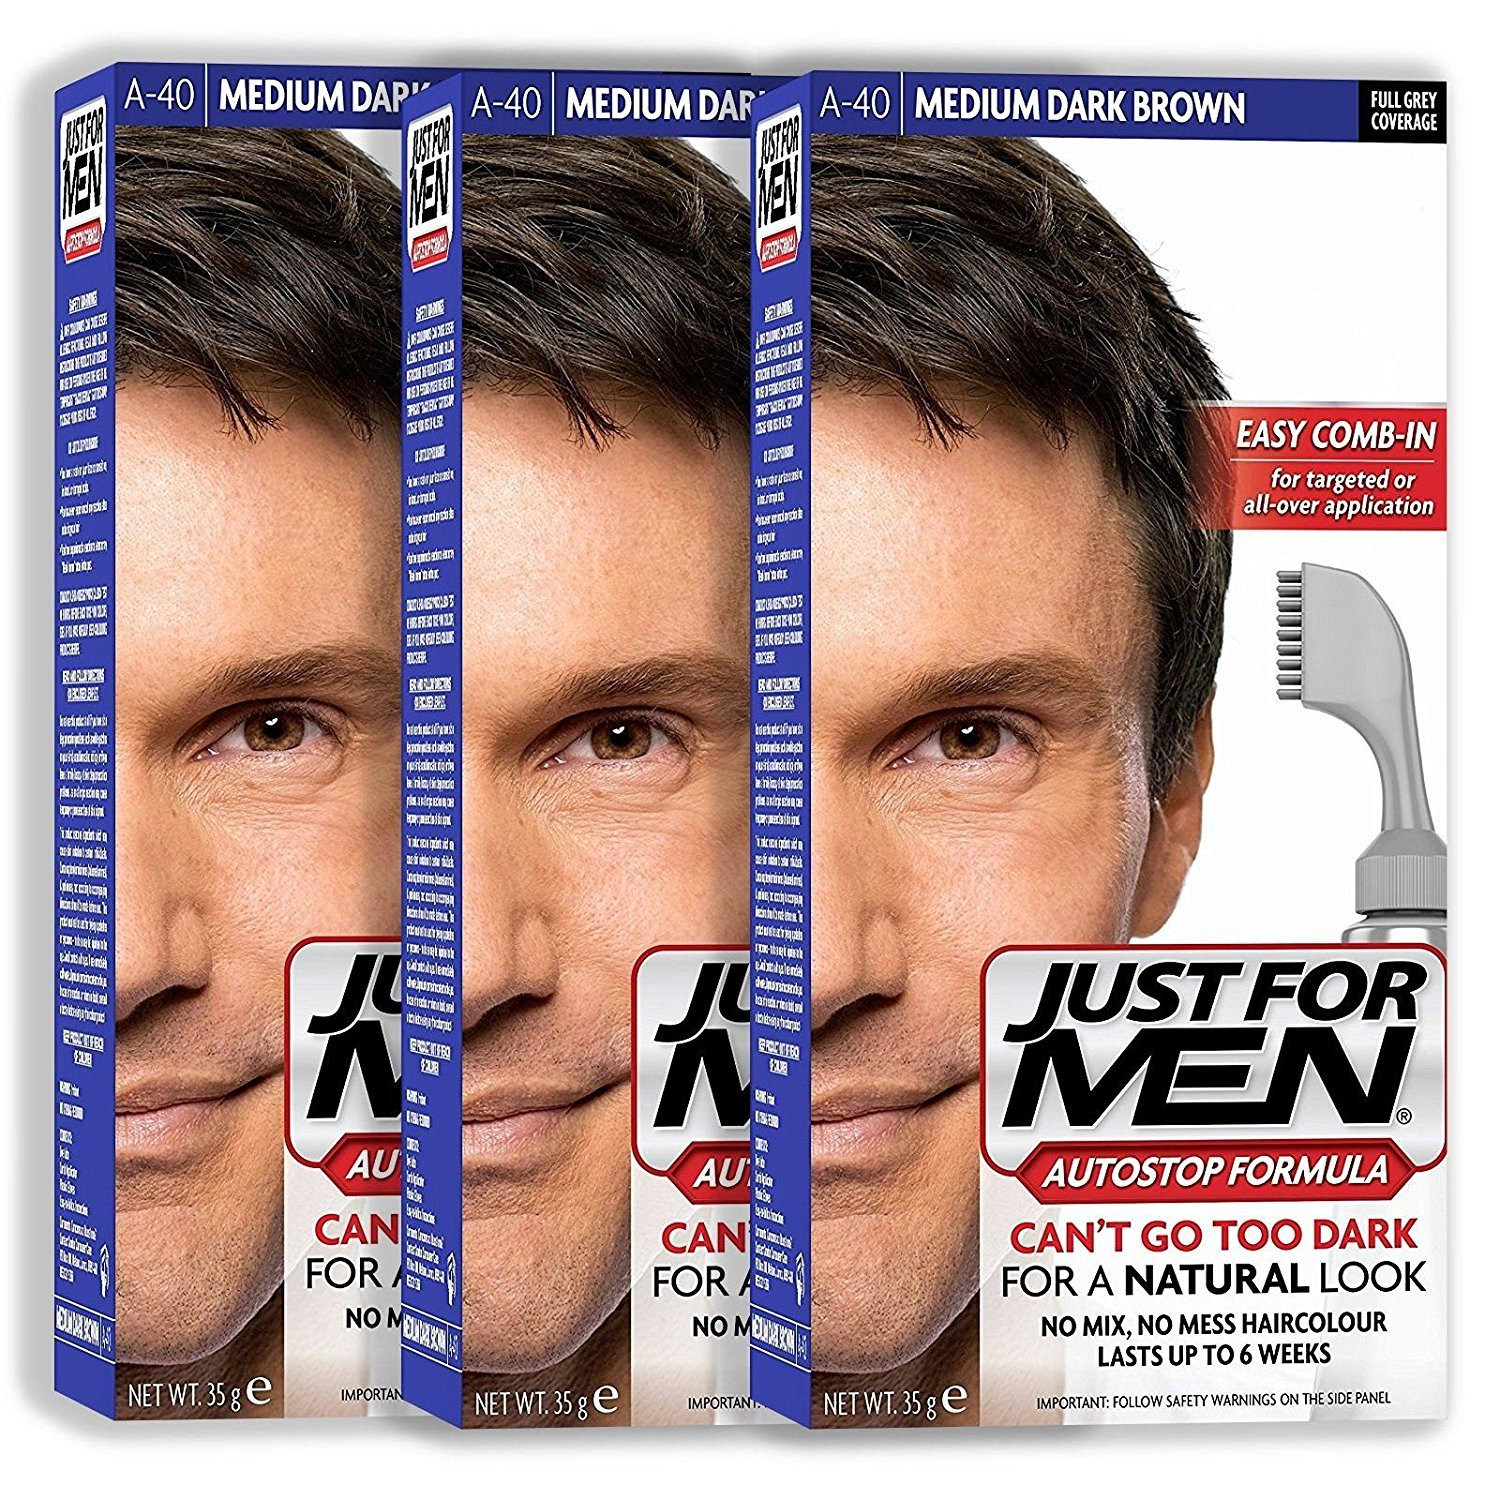 3 x Just For Men Autostop Hair Colour Auto Stop - Choose Your Shade-Medium Dark Brown A40 by Just for Men